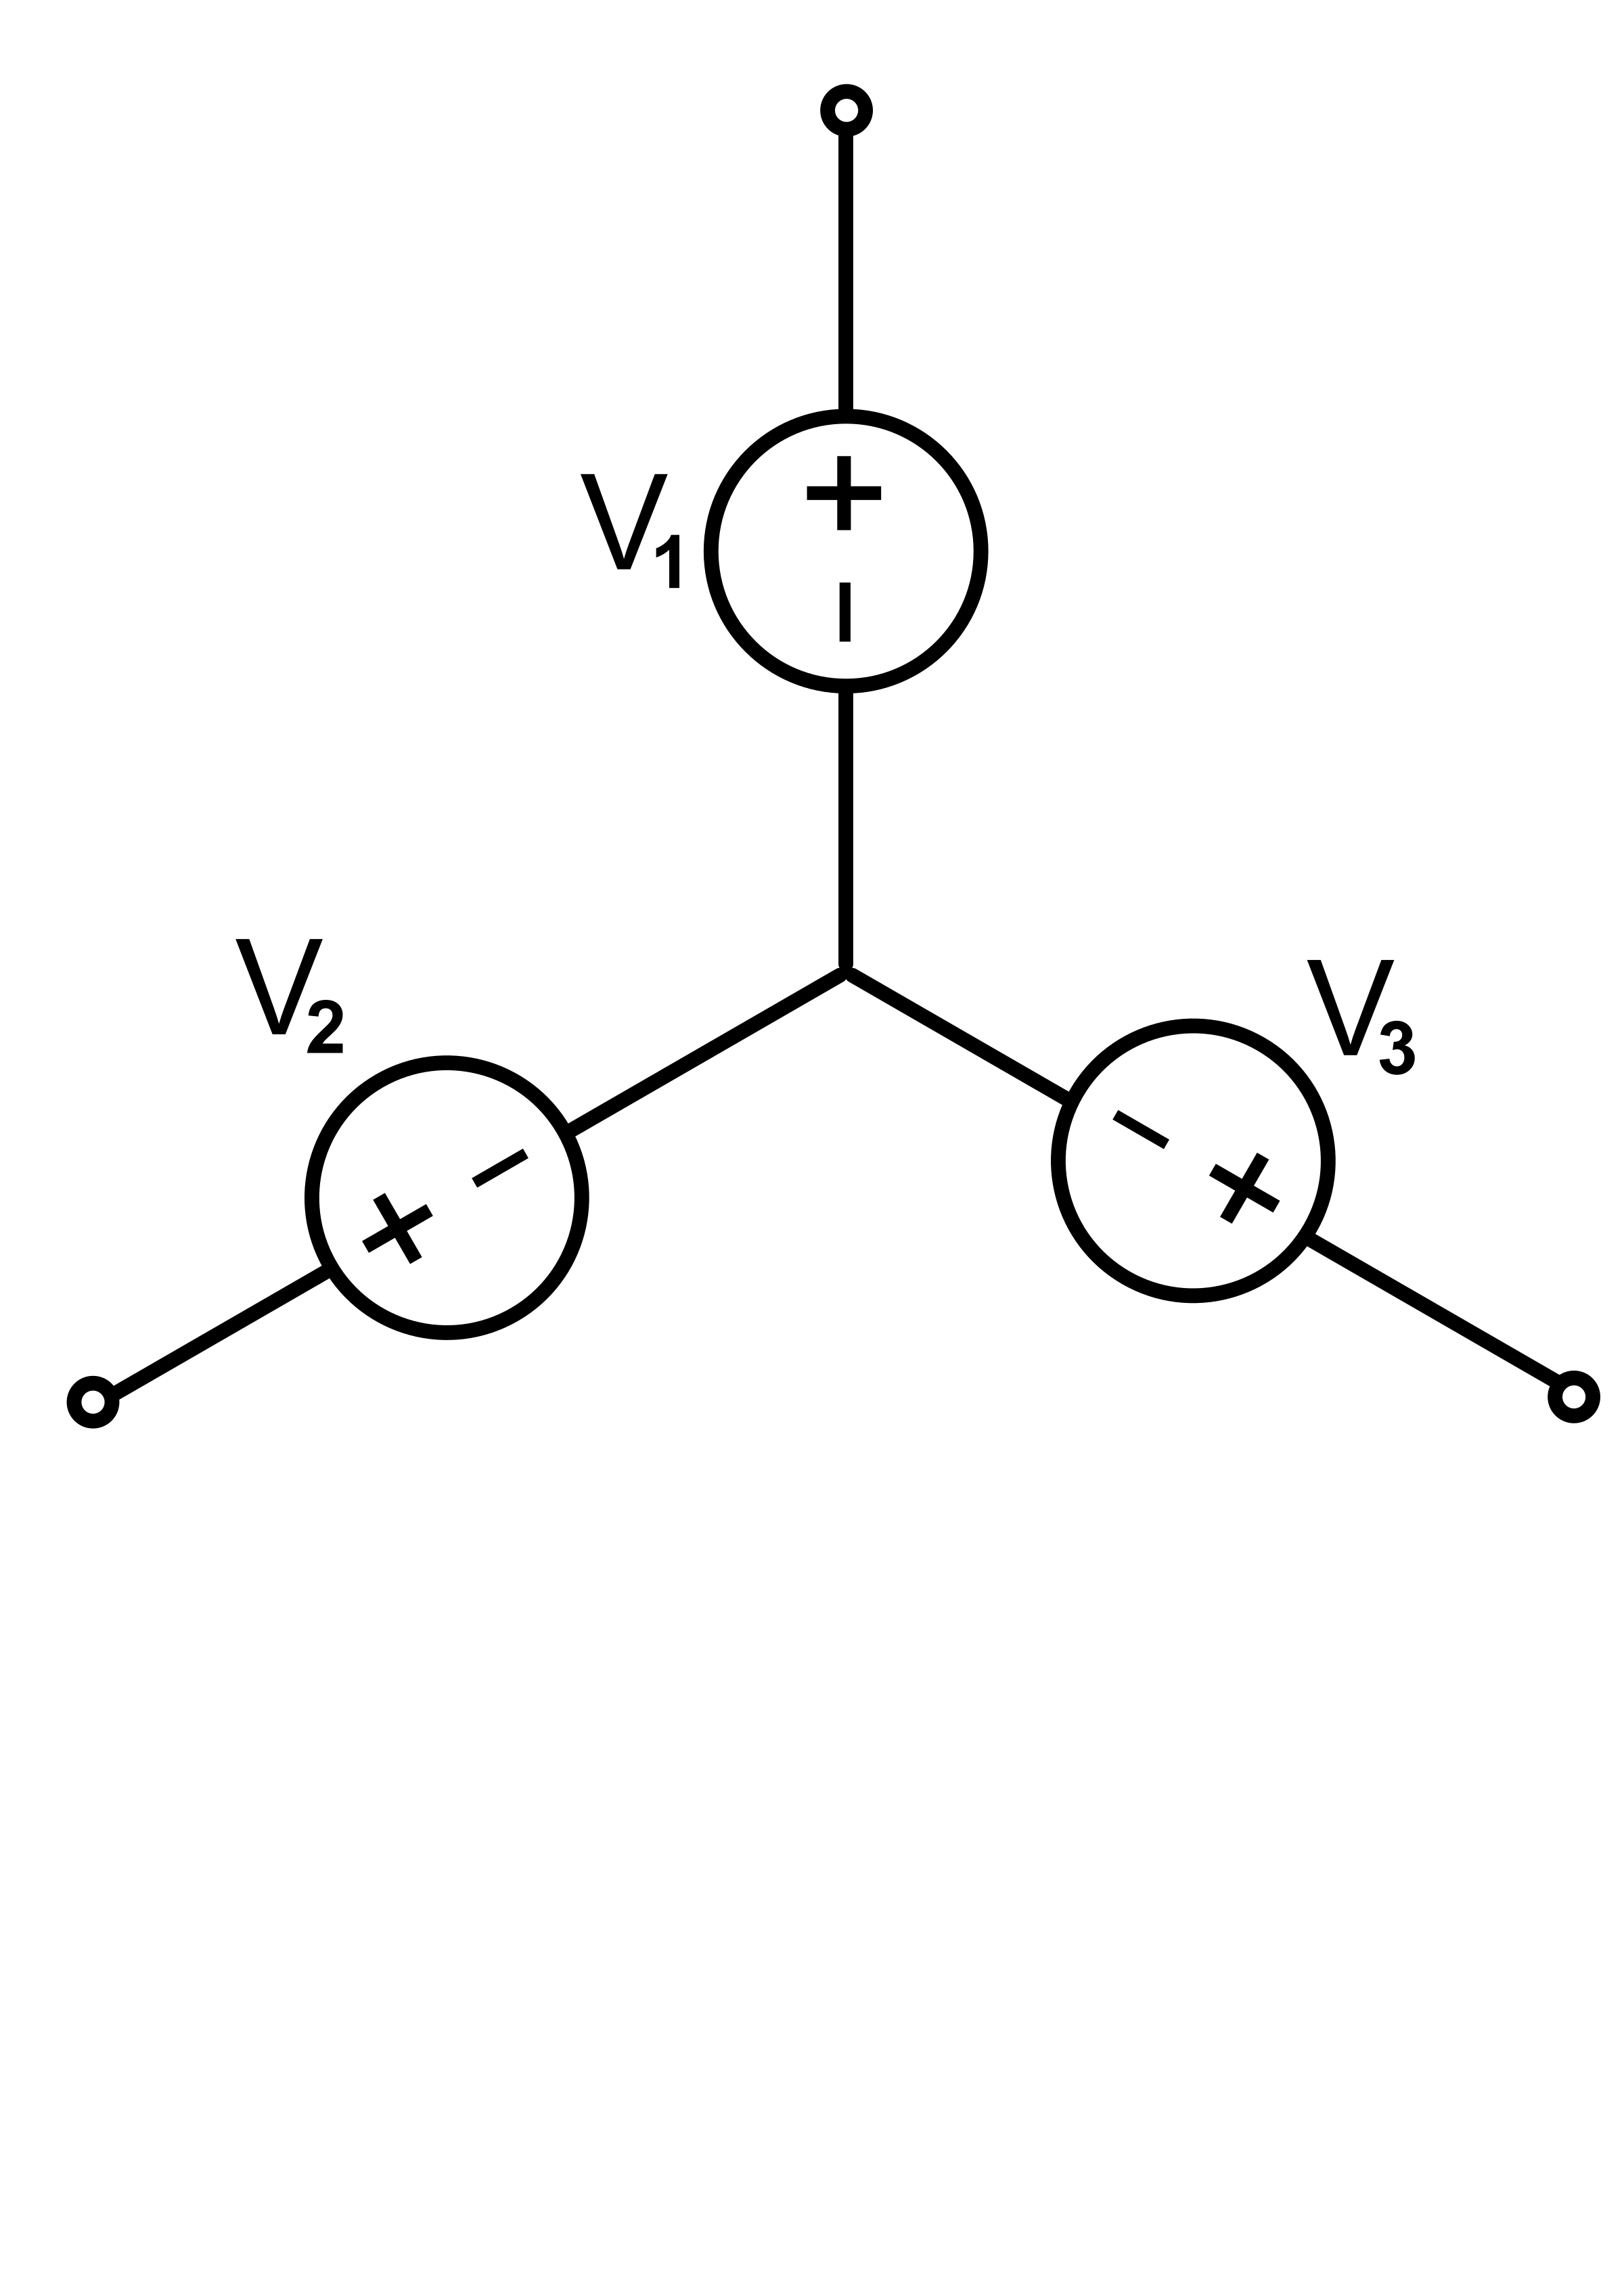 A Three-phase electric power source connected in Y formation by Eypros